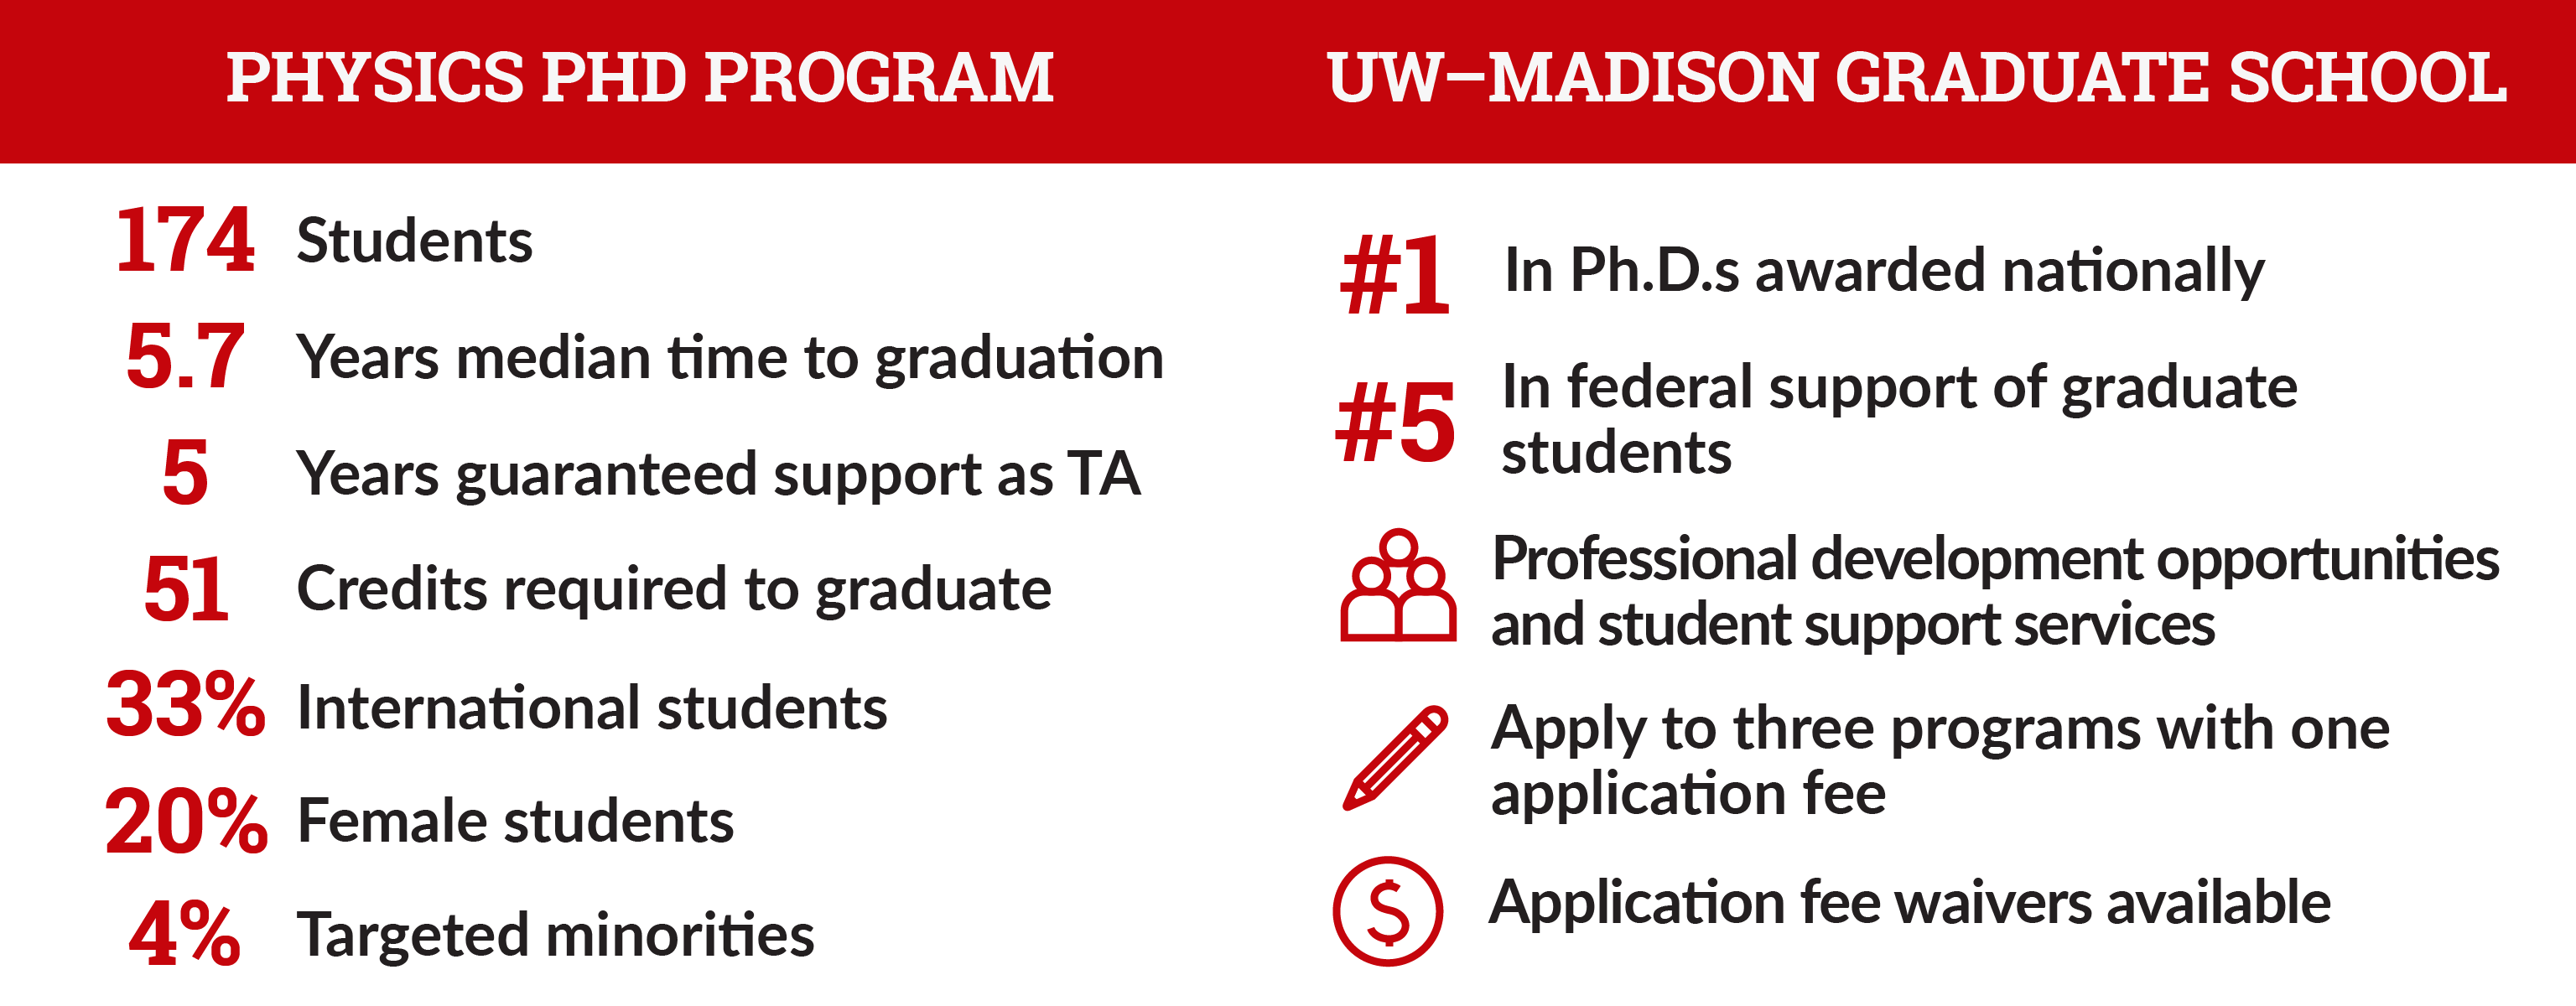 infographic with facts and figures about PhD program